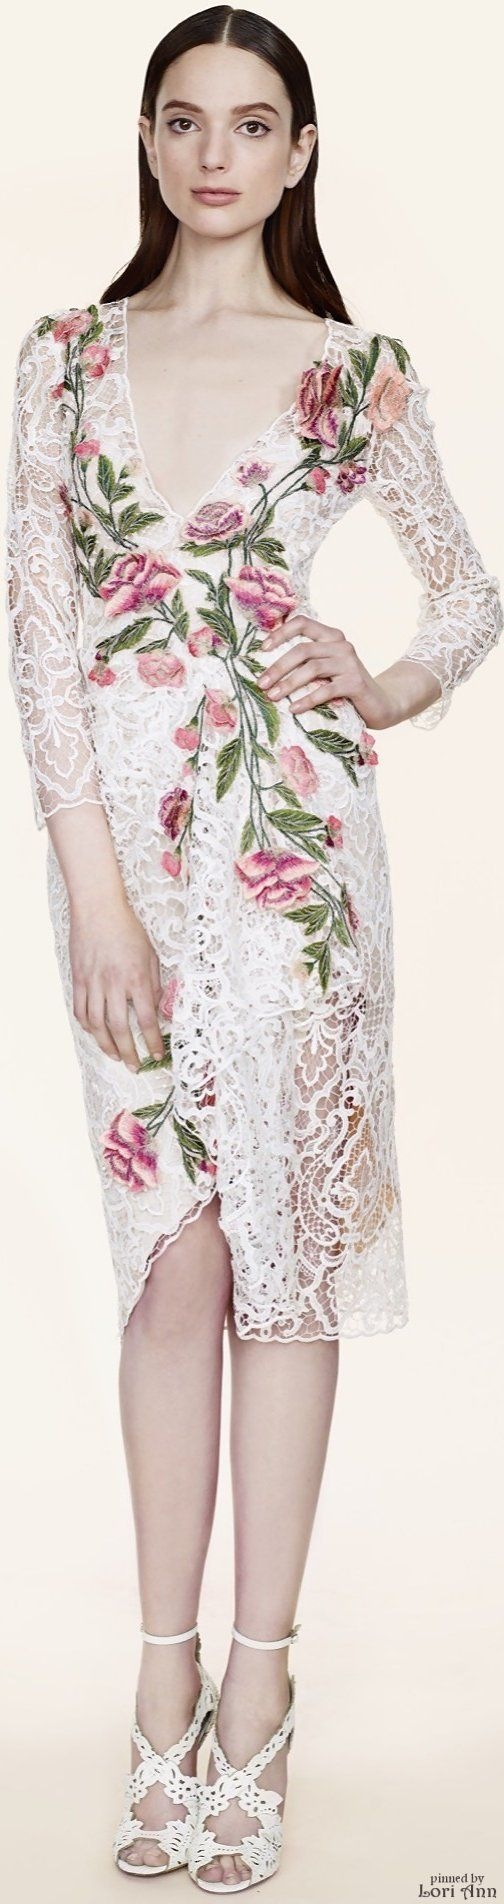 Marchesa Resort 2016 jαɢlαdy